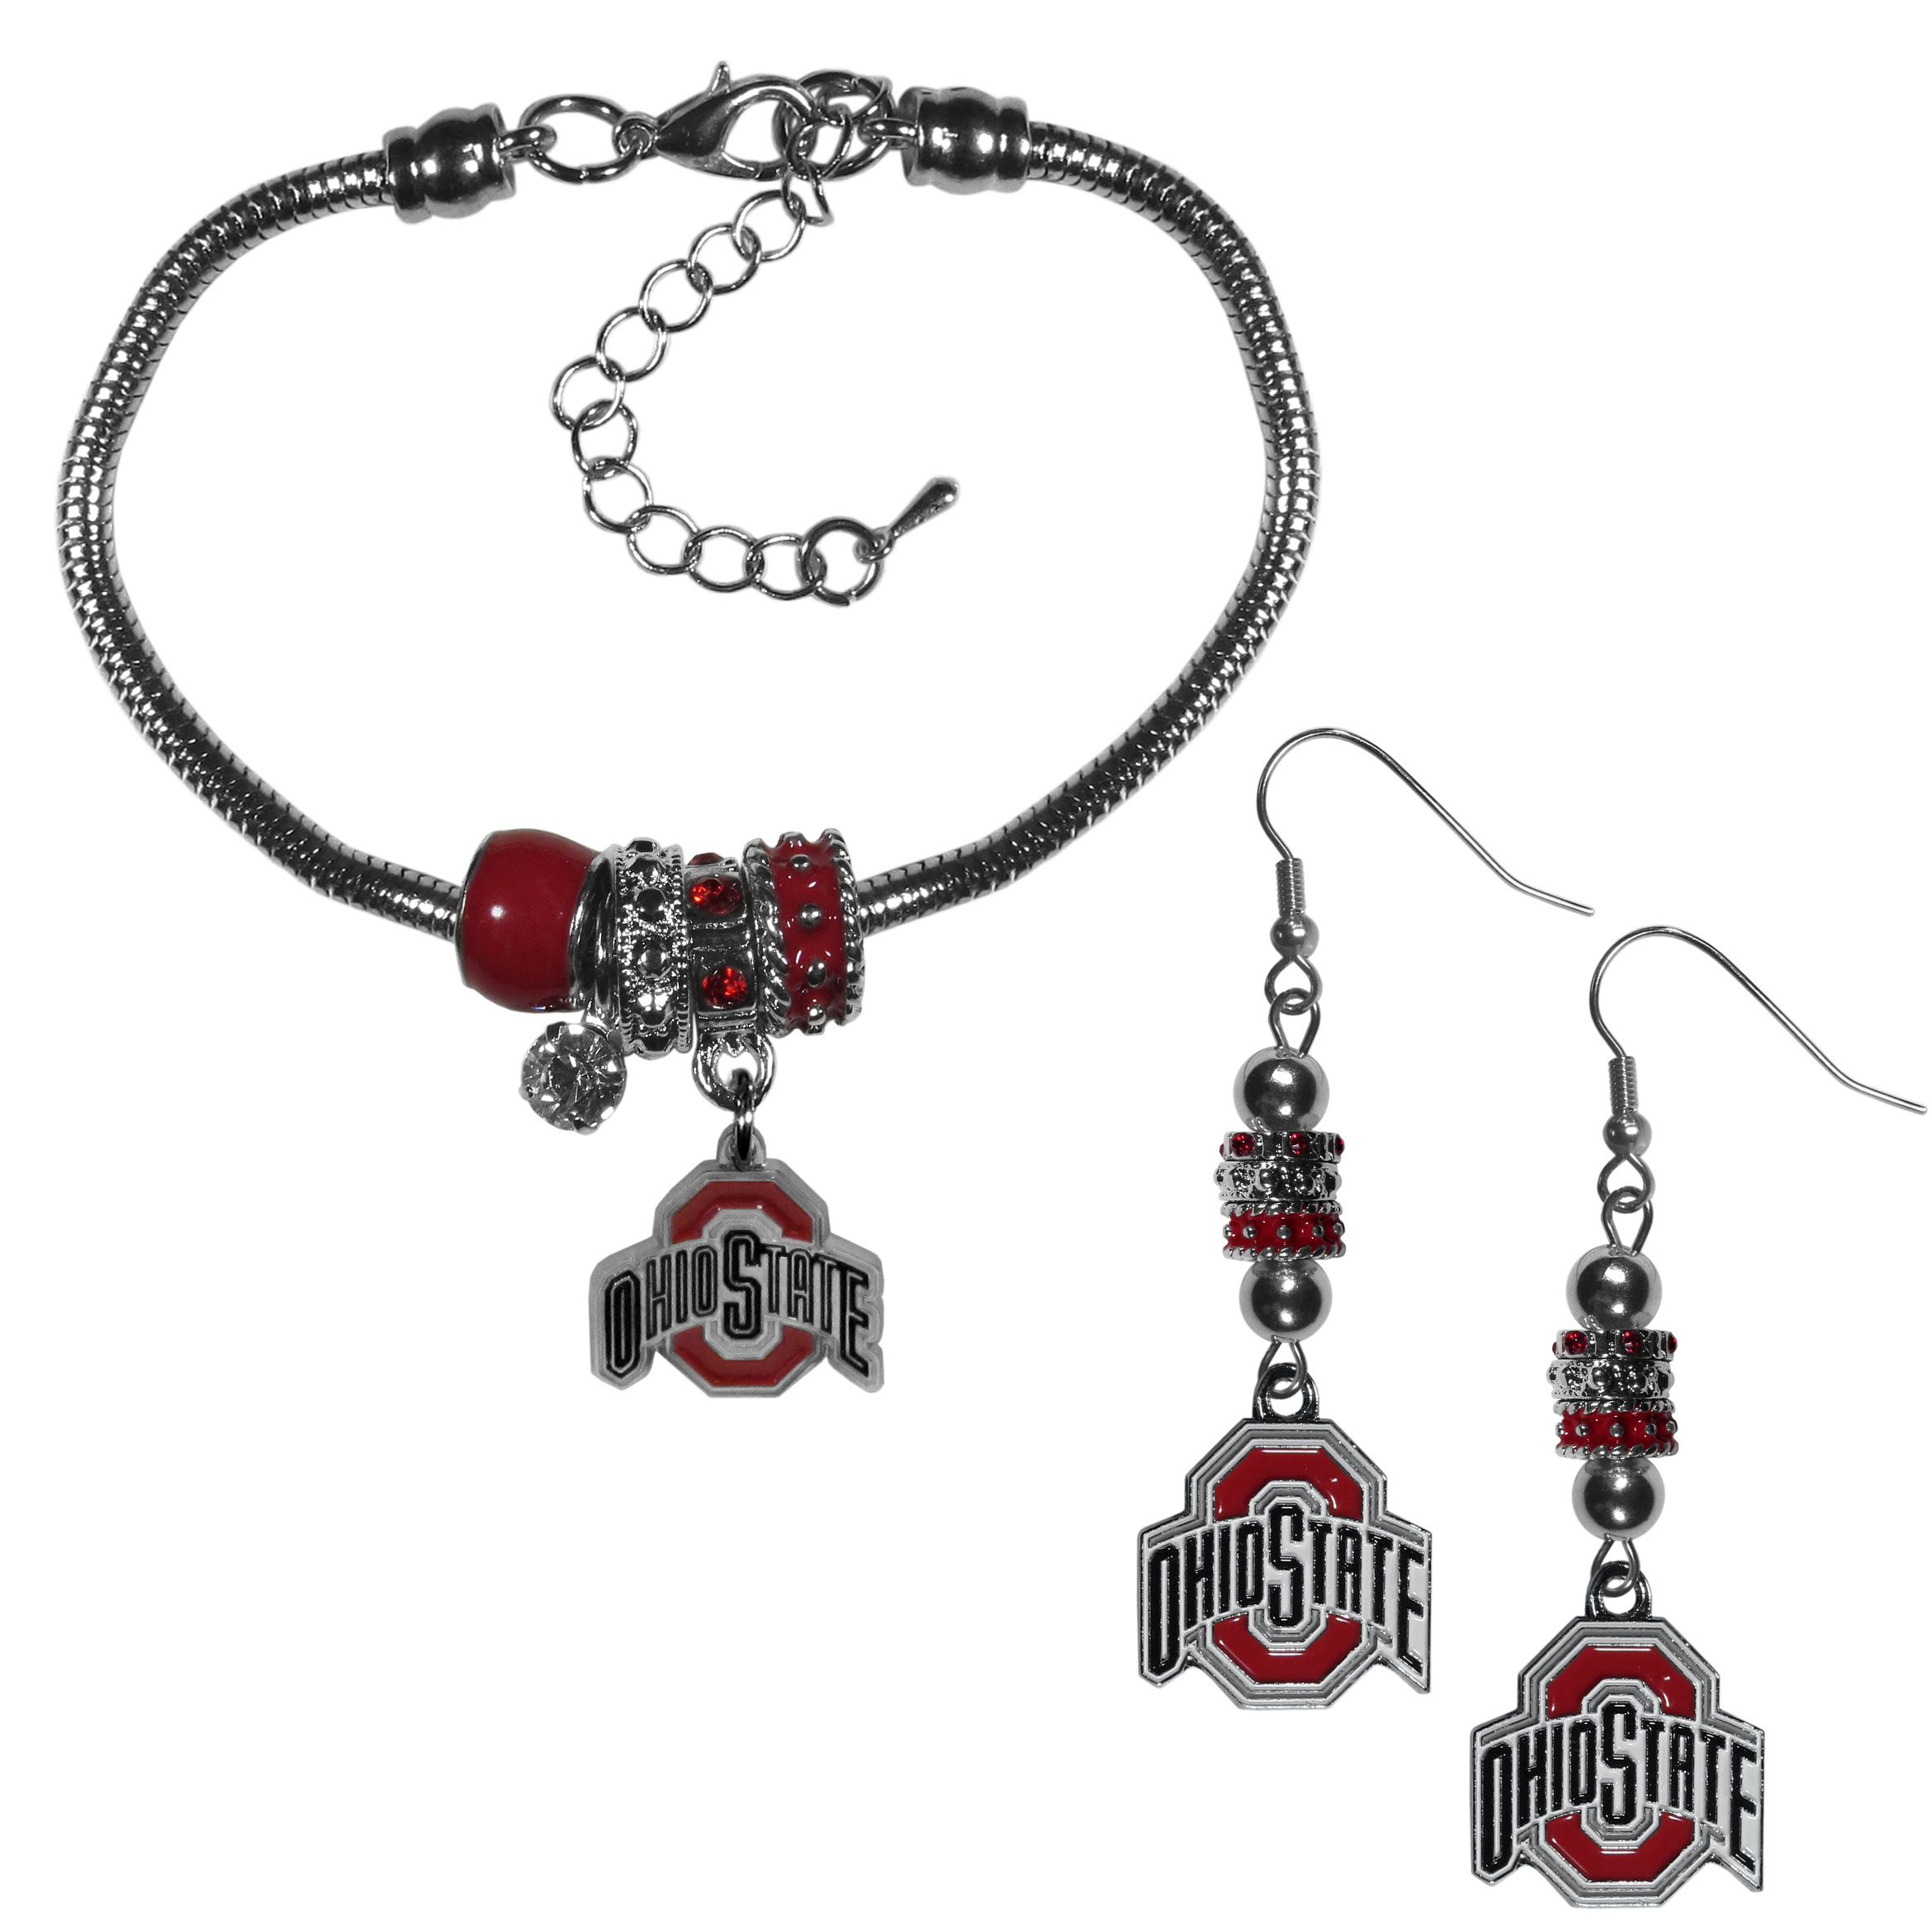 Ohio St. Buckeyes Euro Bead Earrings and Bracelet Set - We combine the popular Euro bead style with your love of the Ohio St. Buckeyes with this beautiful jewelry set that includes earrings and a matching bracelet. The stylish earrings feature hypoallergenic, nickel free fishhook posts and 3 team colored Euro beads and a metal team charm. The matching snake chain bracelet is 7.5 inches long with a 2 inch extender and 4 Euro beads with a rhinestone charm and team charm.